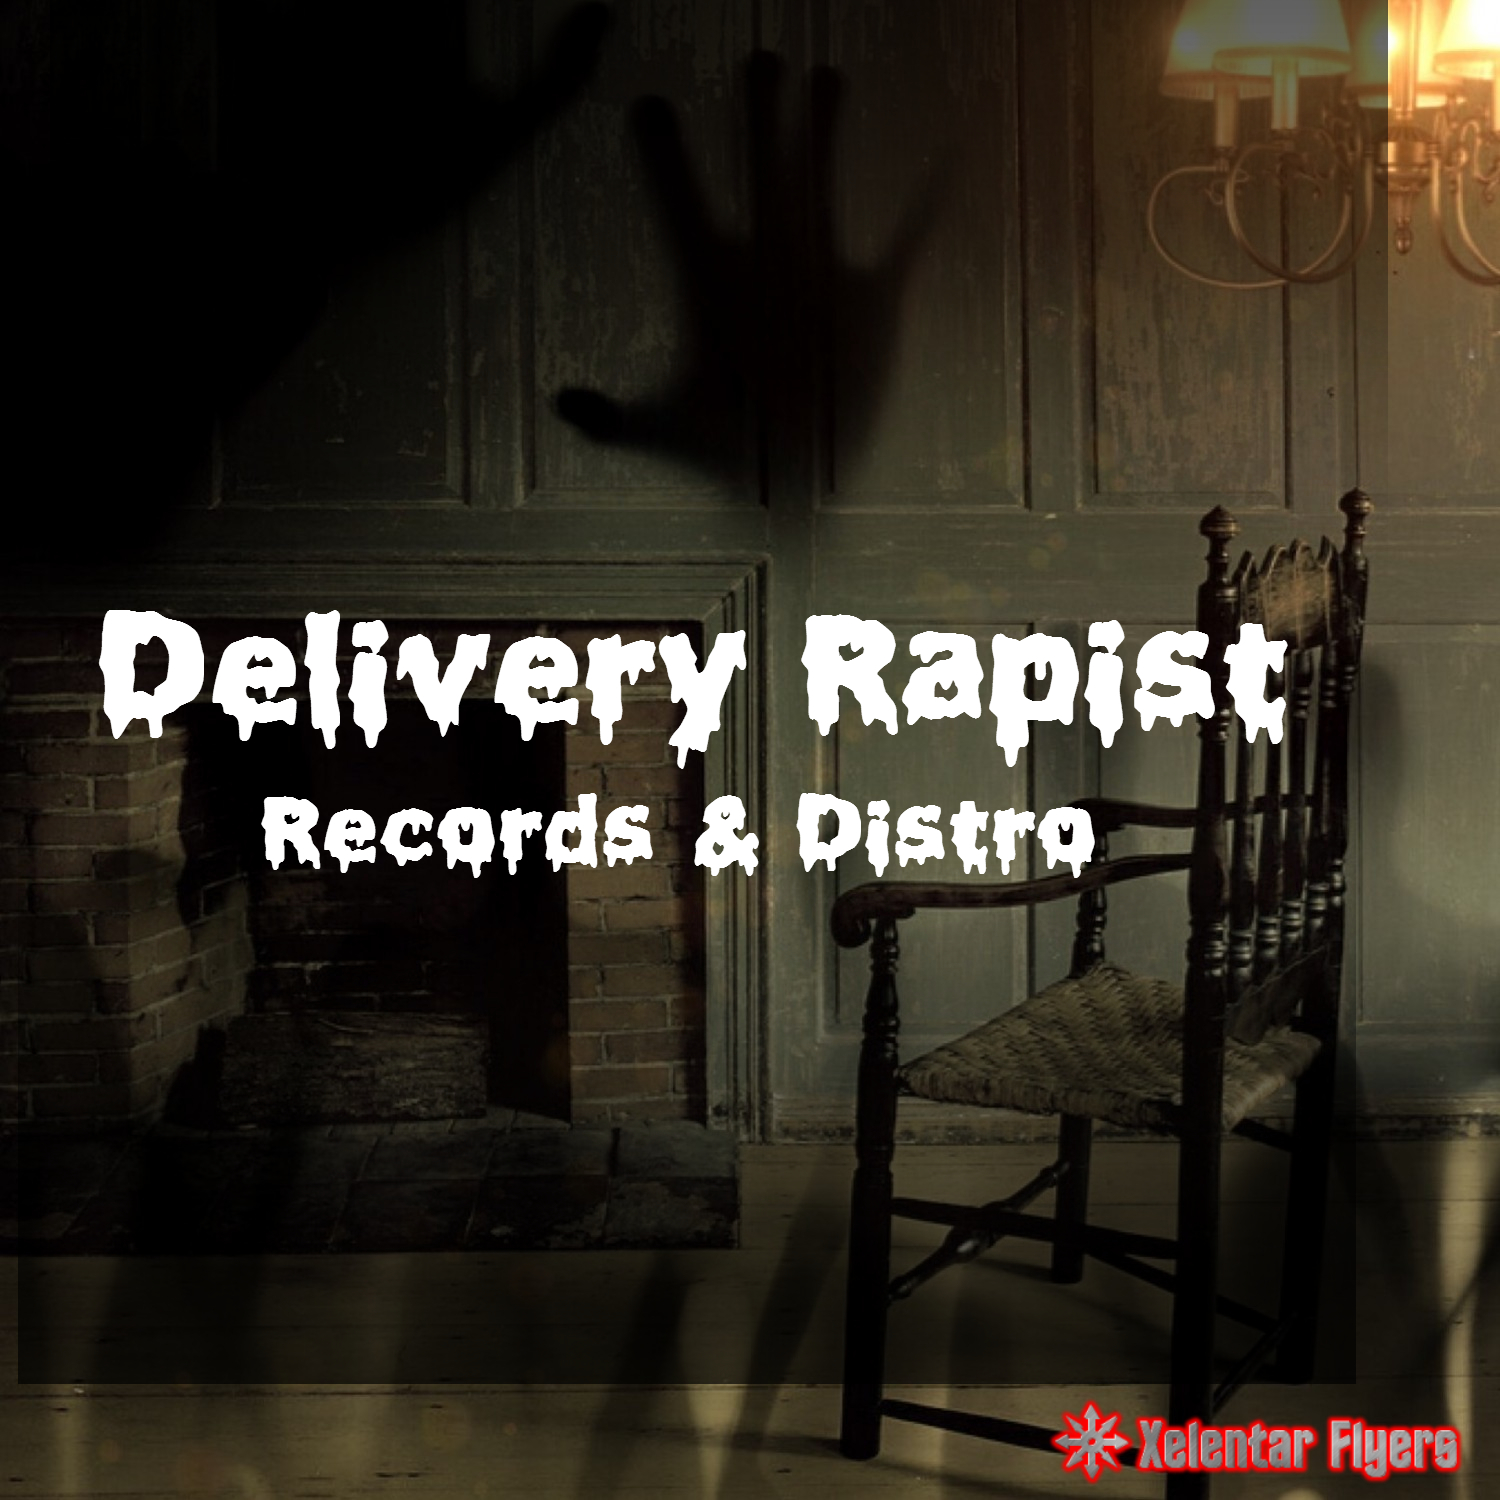 DELIVERY RAPIST RECORDS & DISTRO